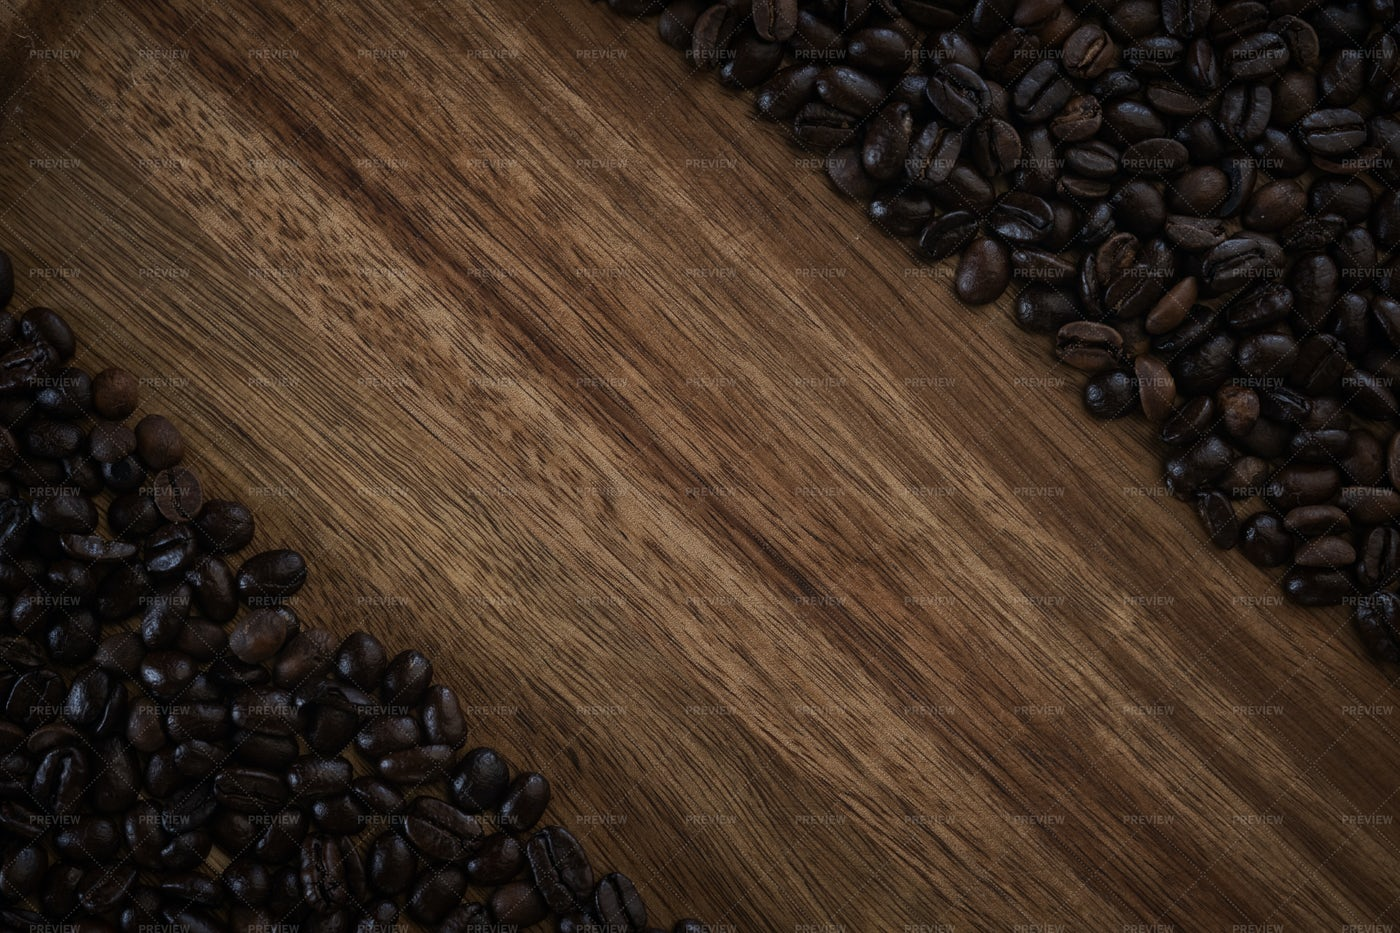 Coffee Beans On Wood: Stock Photos